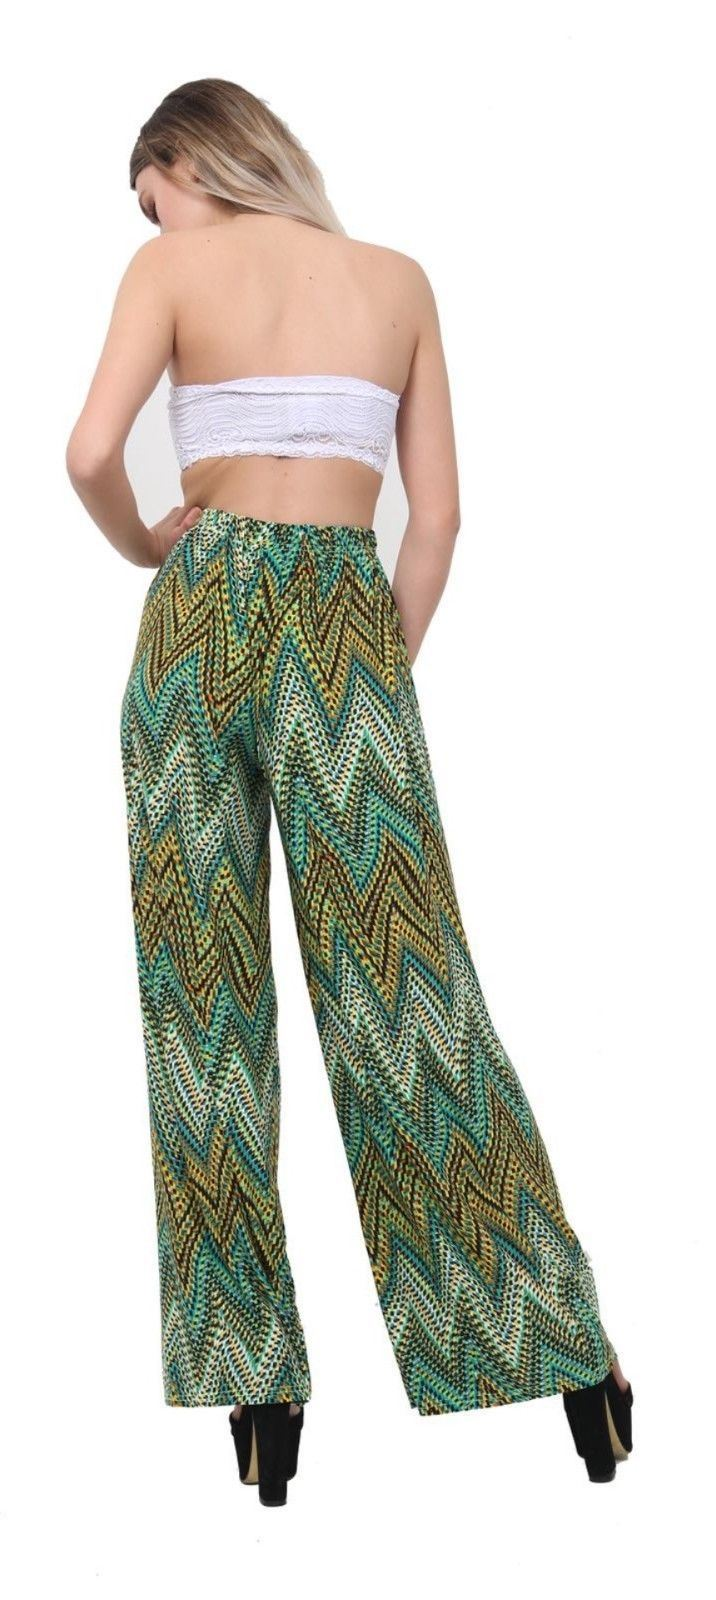 New-Ladies-Floral-Printed-Wide-Leg-Flared-Parallel-Baggy-Trousers-Pants-Palazzo thumbnail 14